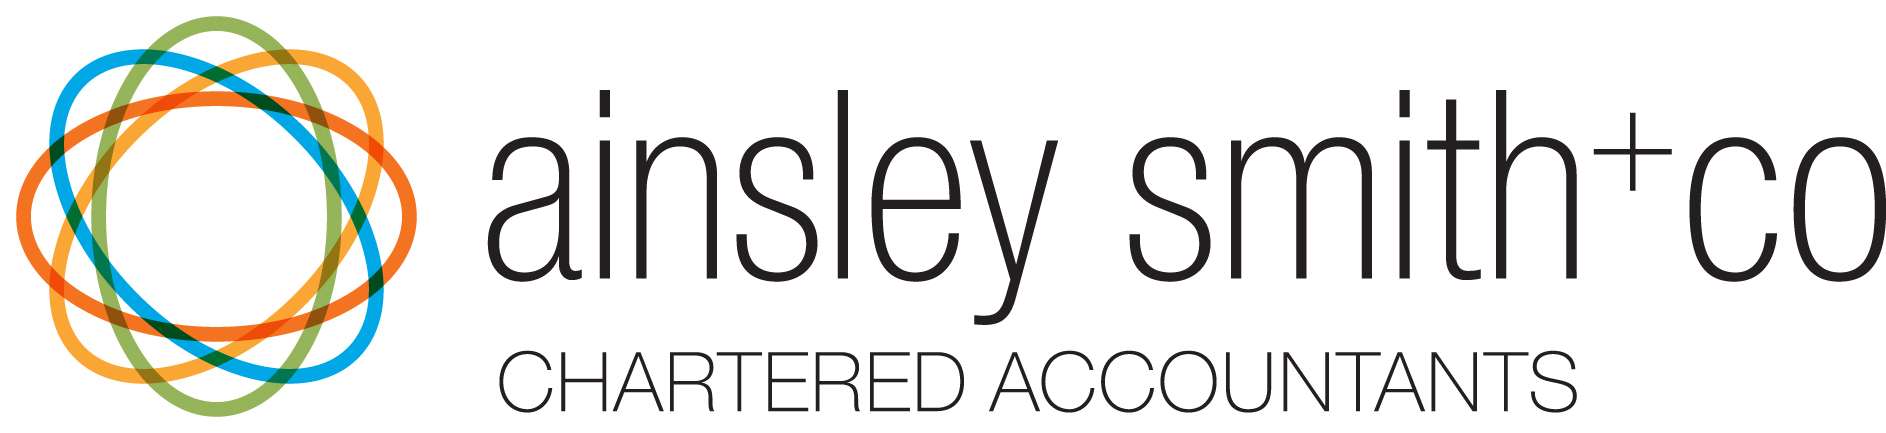 Ainsley Smith & Co, Accountants, logo